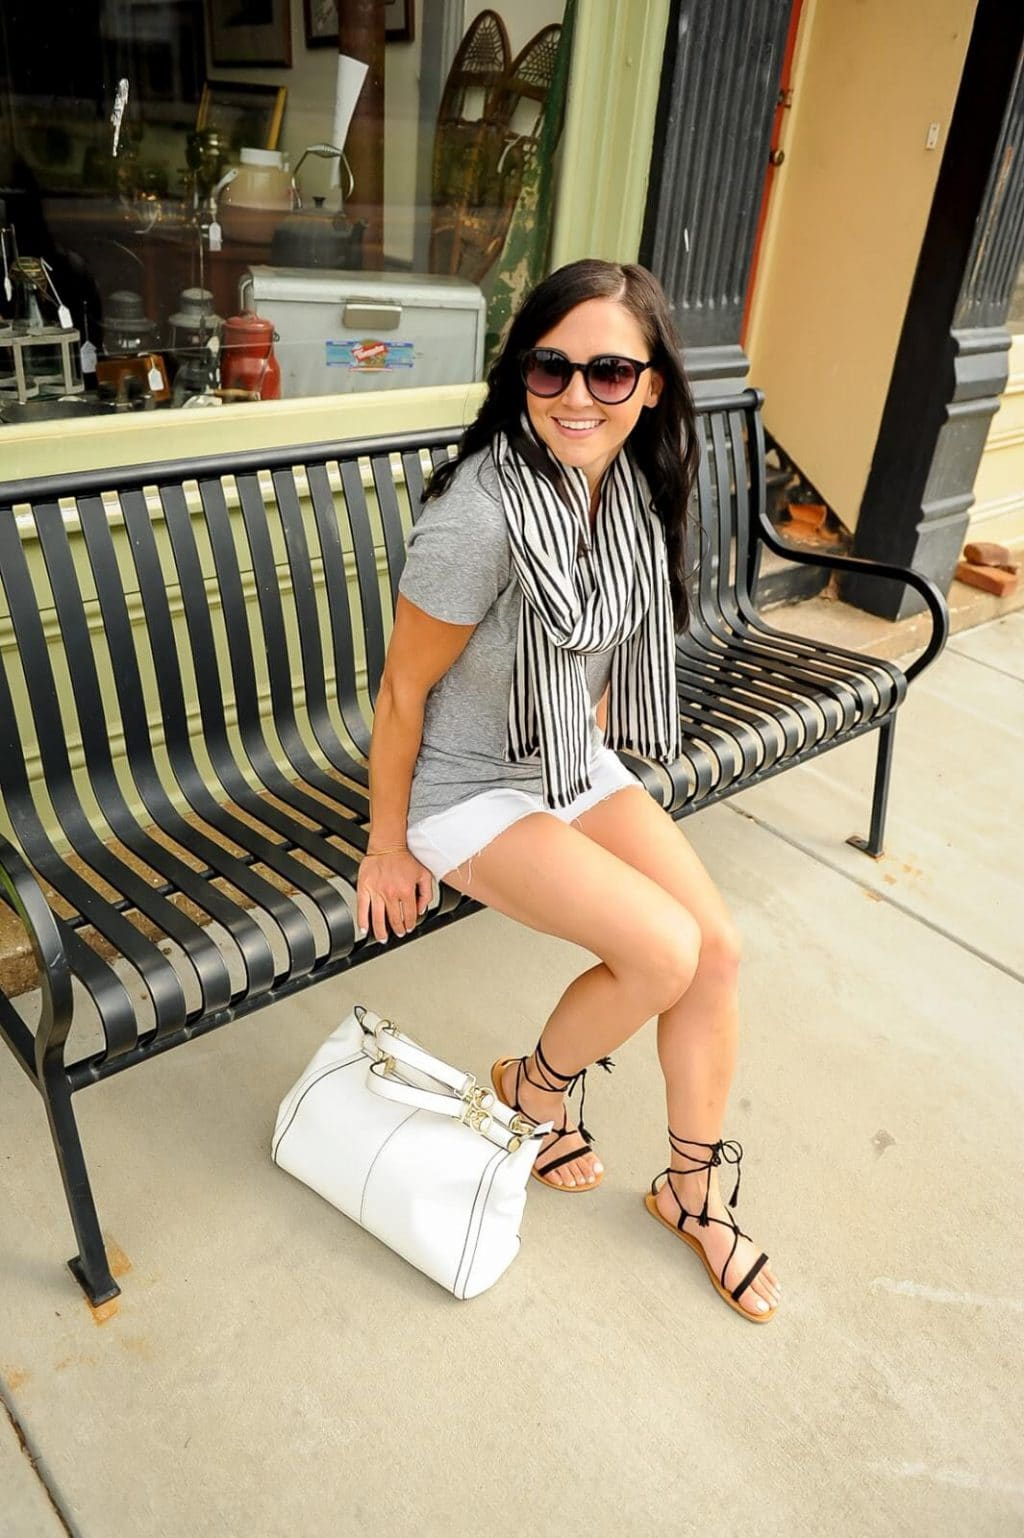 Mom casual: White shorts, grey tee, striped scarf, lace up tassel sandals